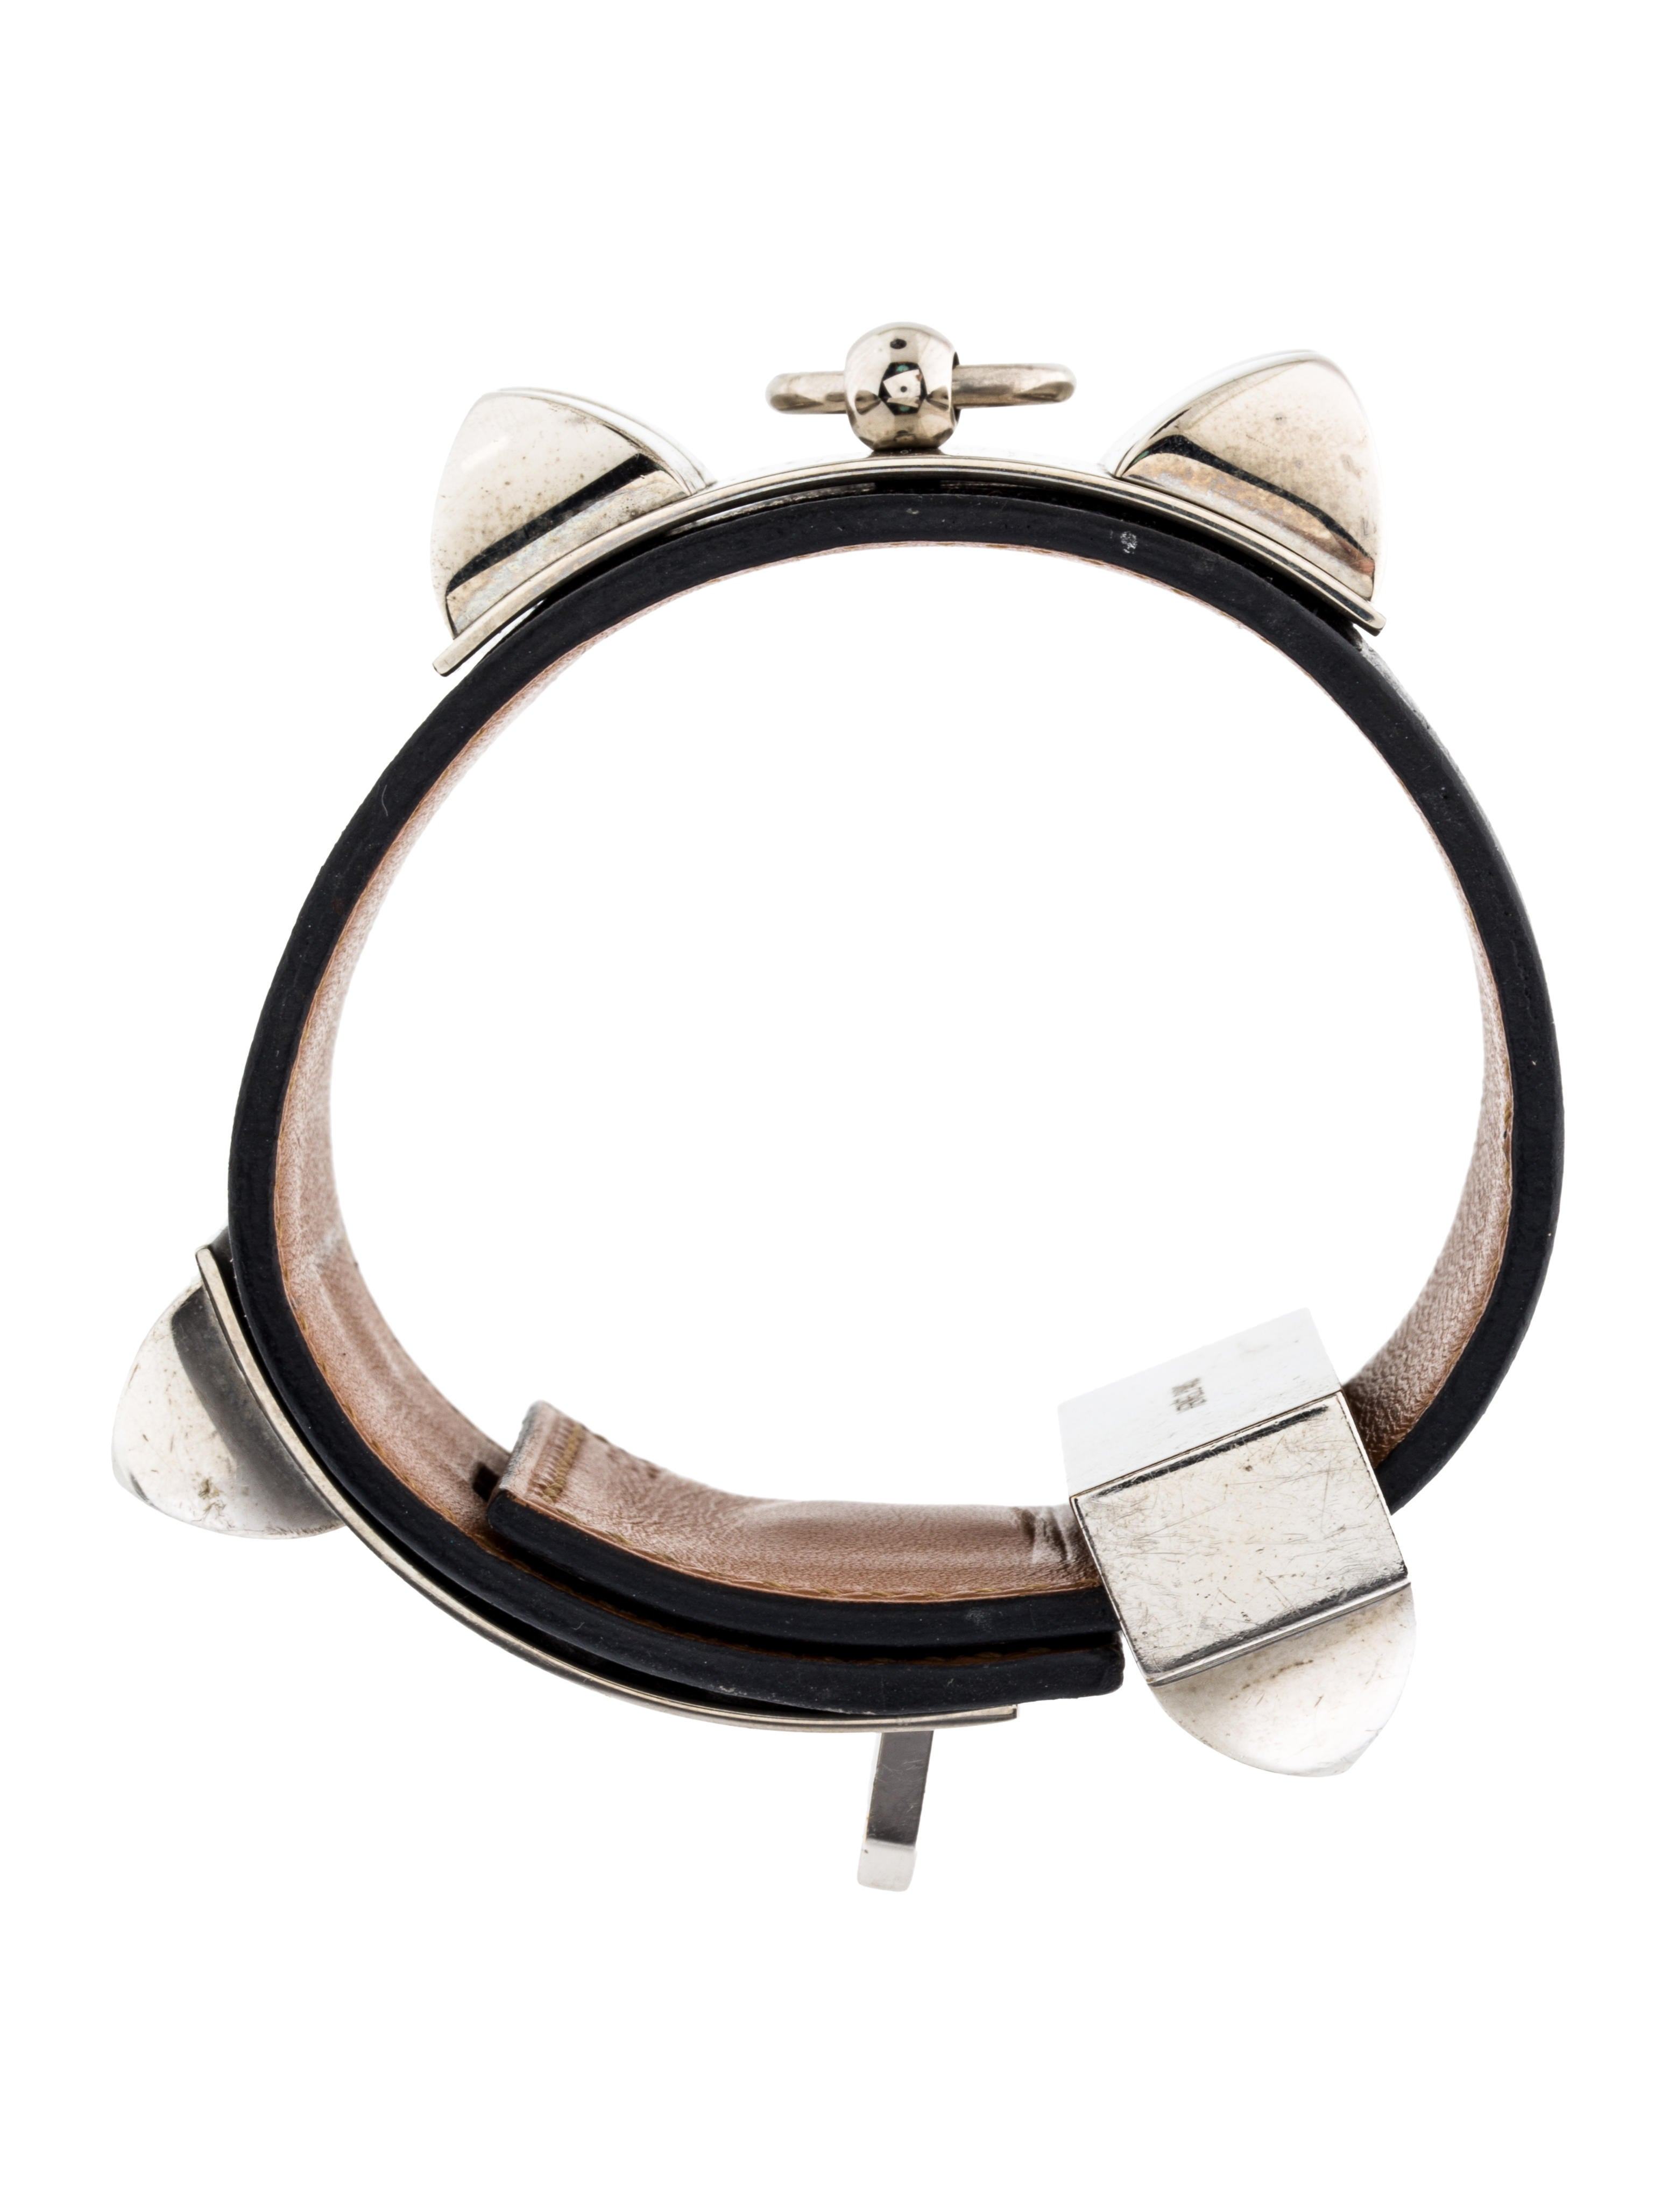 Hermès Collier De Chien Bracelet  Bracelets  Her90153. Digital Watches. Ocean Inspired Wedding Rings. Where To Get Engagement Rings. Diamond Infinity Band. Pearl Bracelet. Black Rubber Bands. Welding Wedding Rings. Leather Cord Necklace